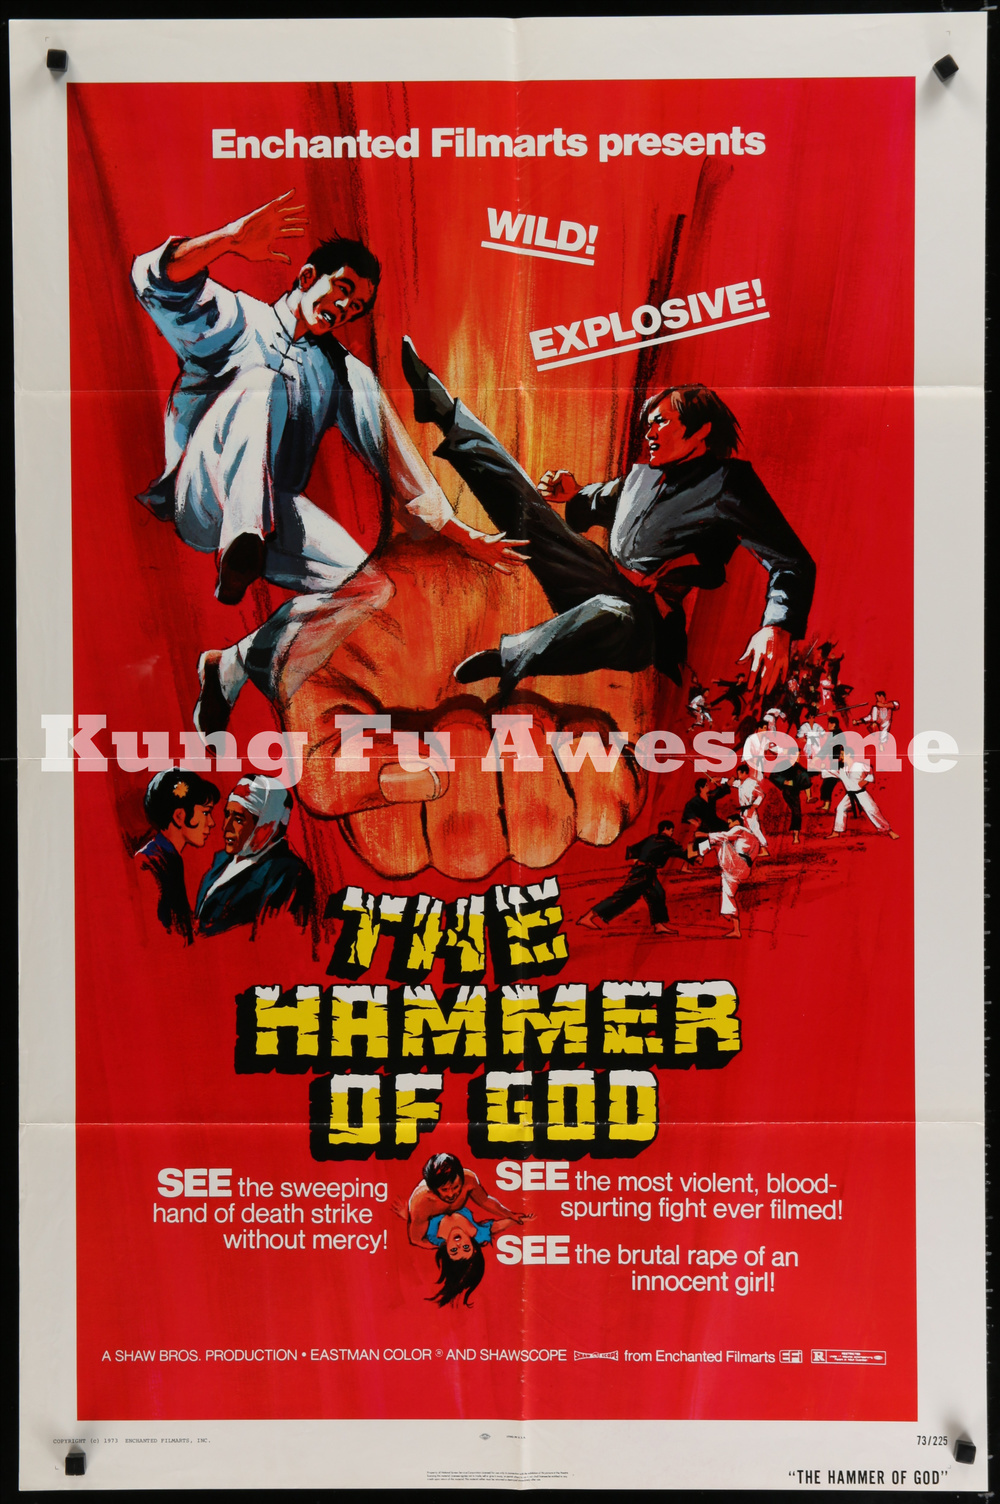 hammer_of_god_JC10641_C.jpg